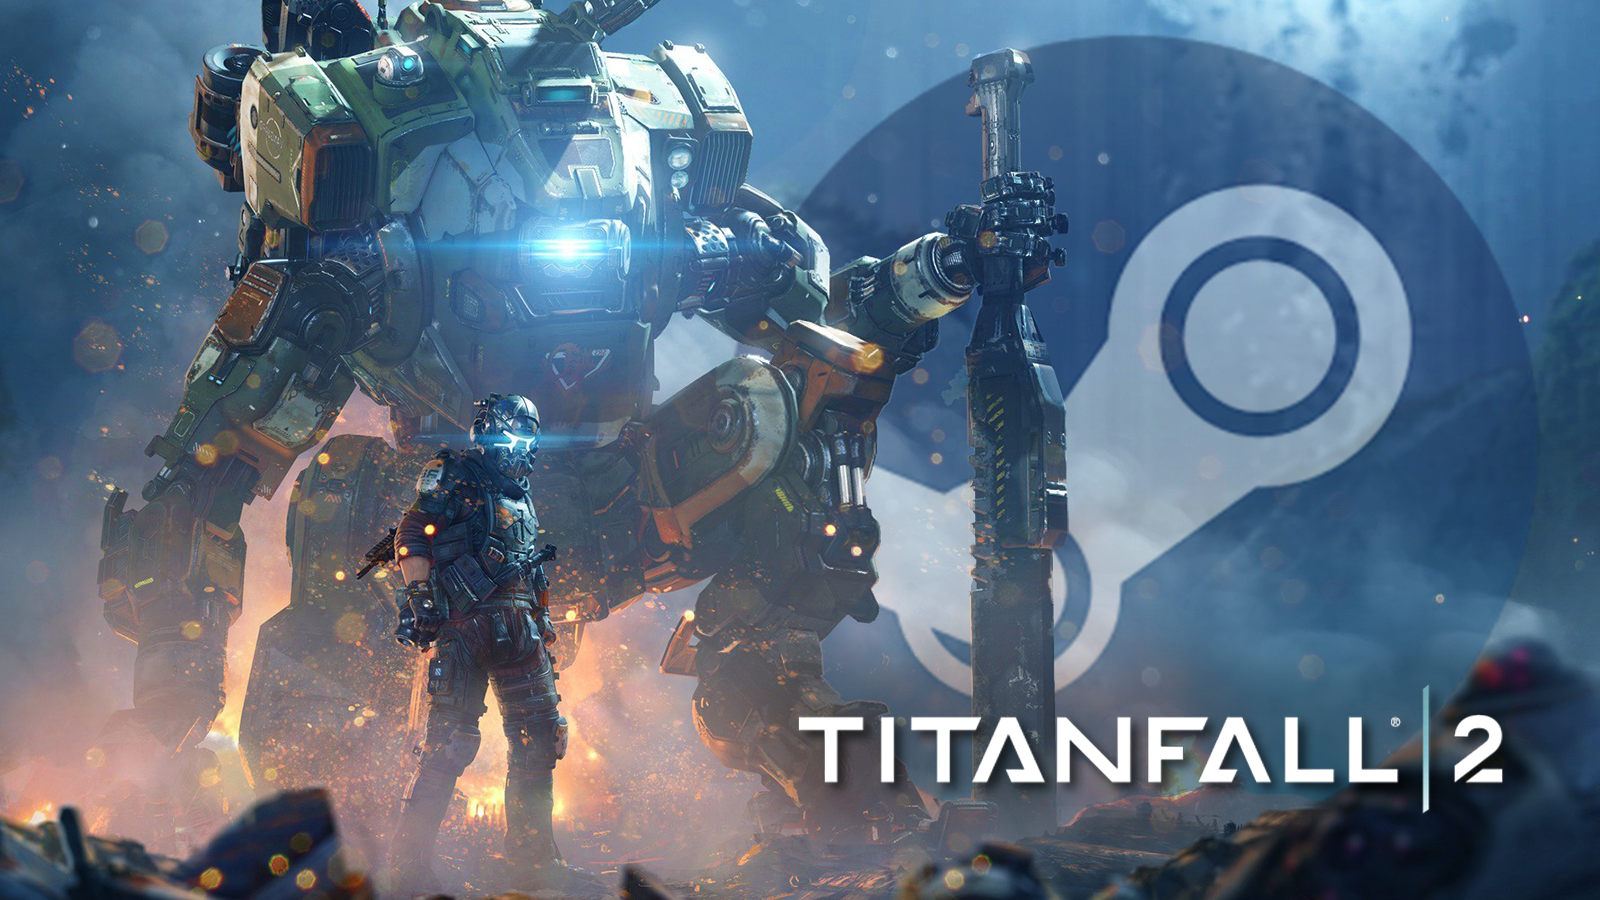 Titanfall 2 pilot stands in front of faded Steam logo.